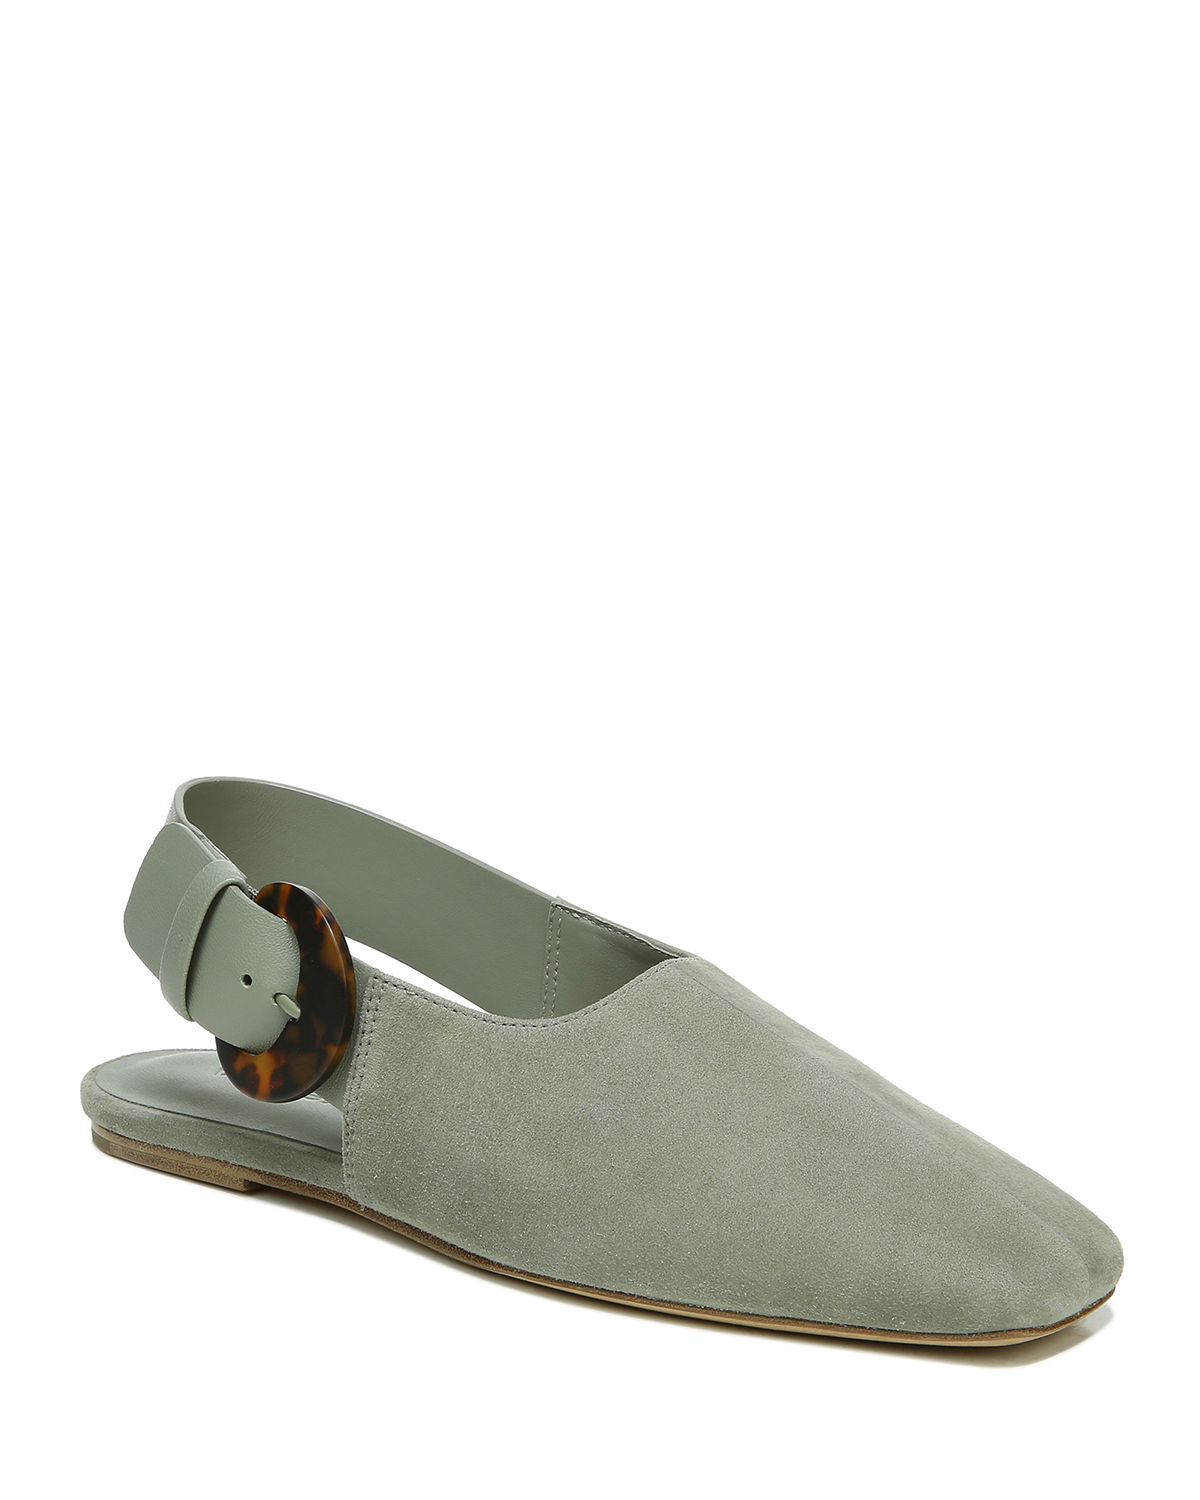 Vince CADOT MIXED LEATHER SLINGBACK FLATS